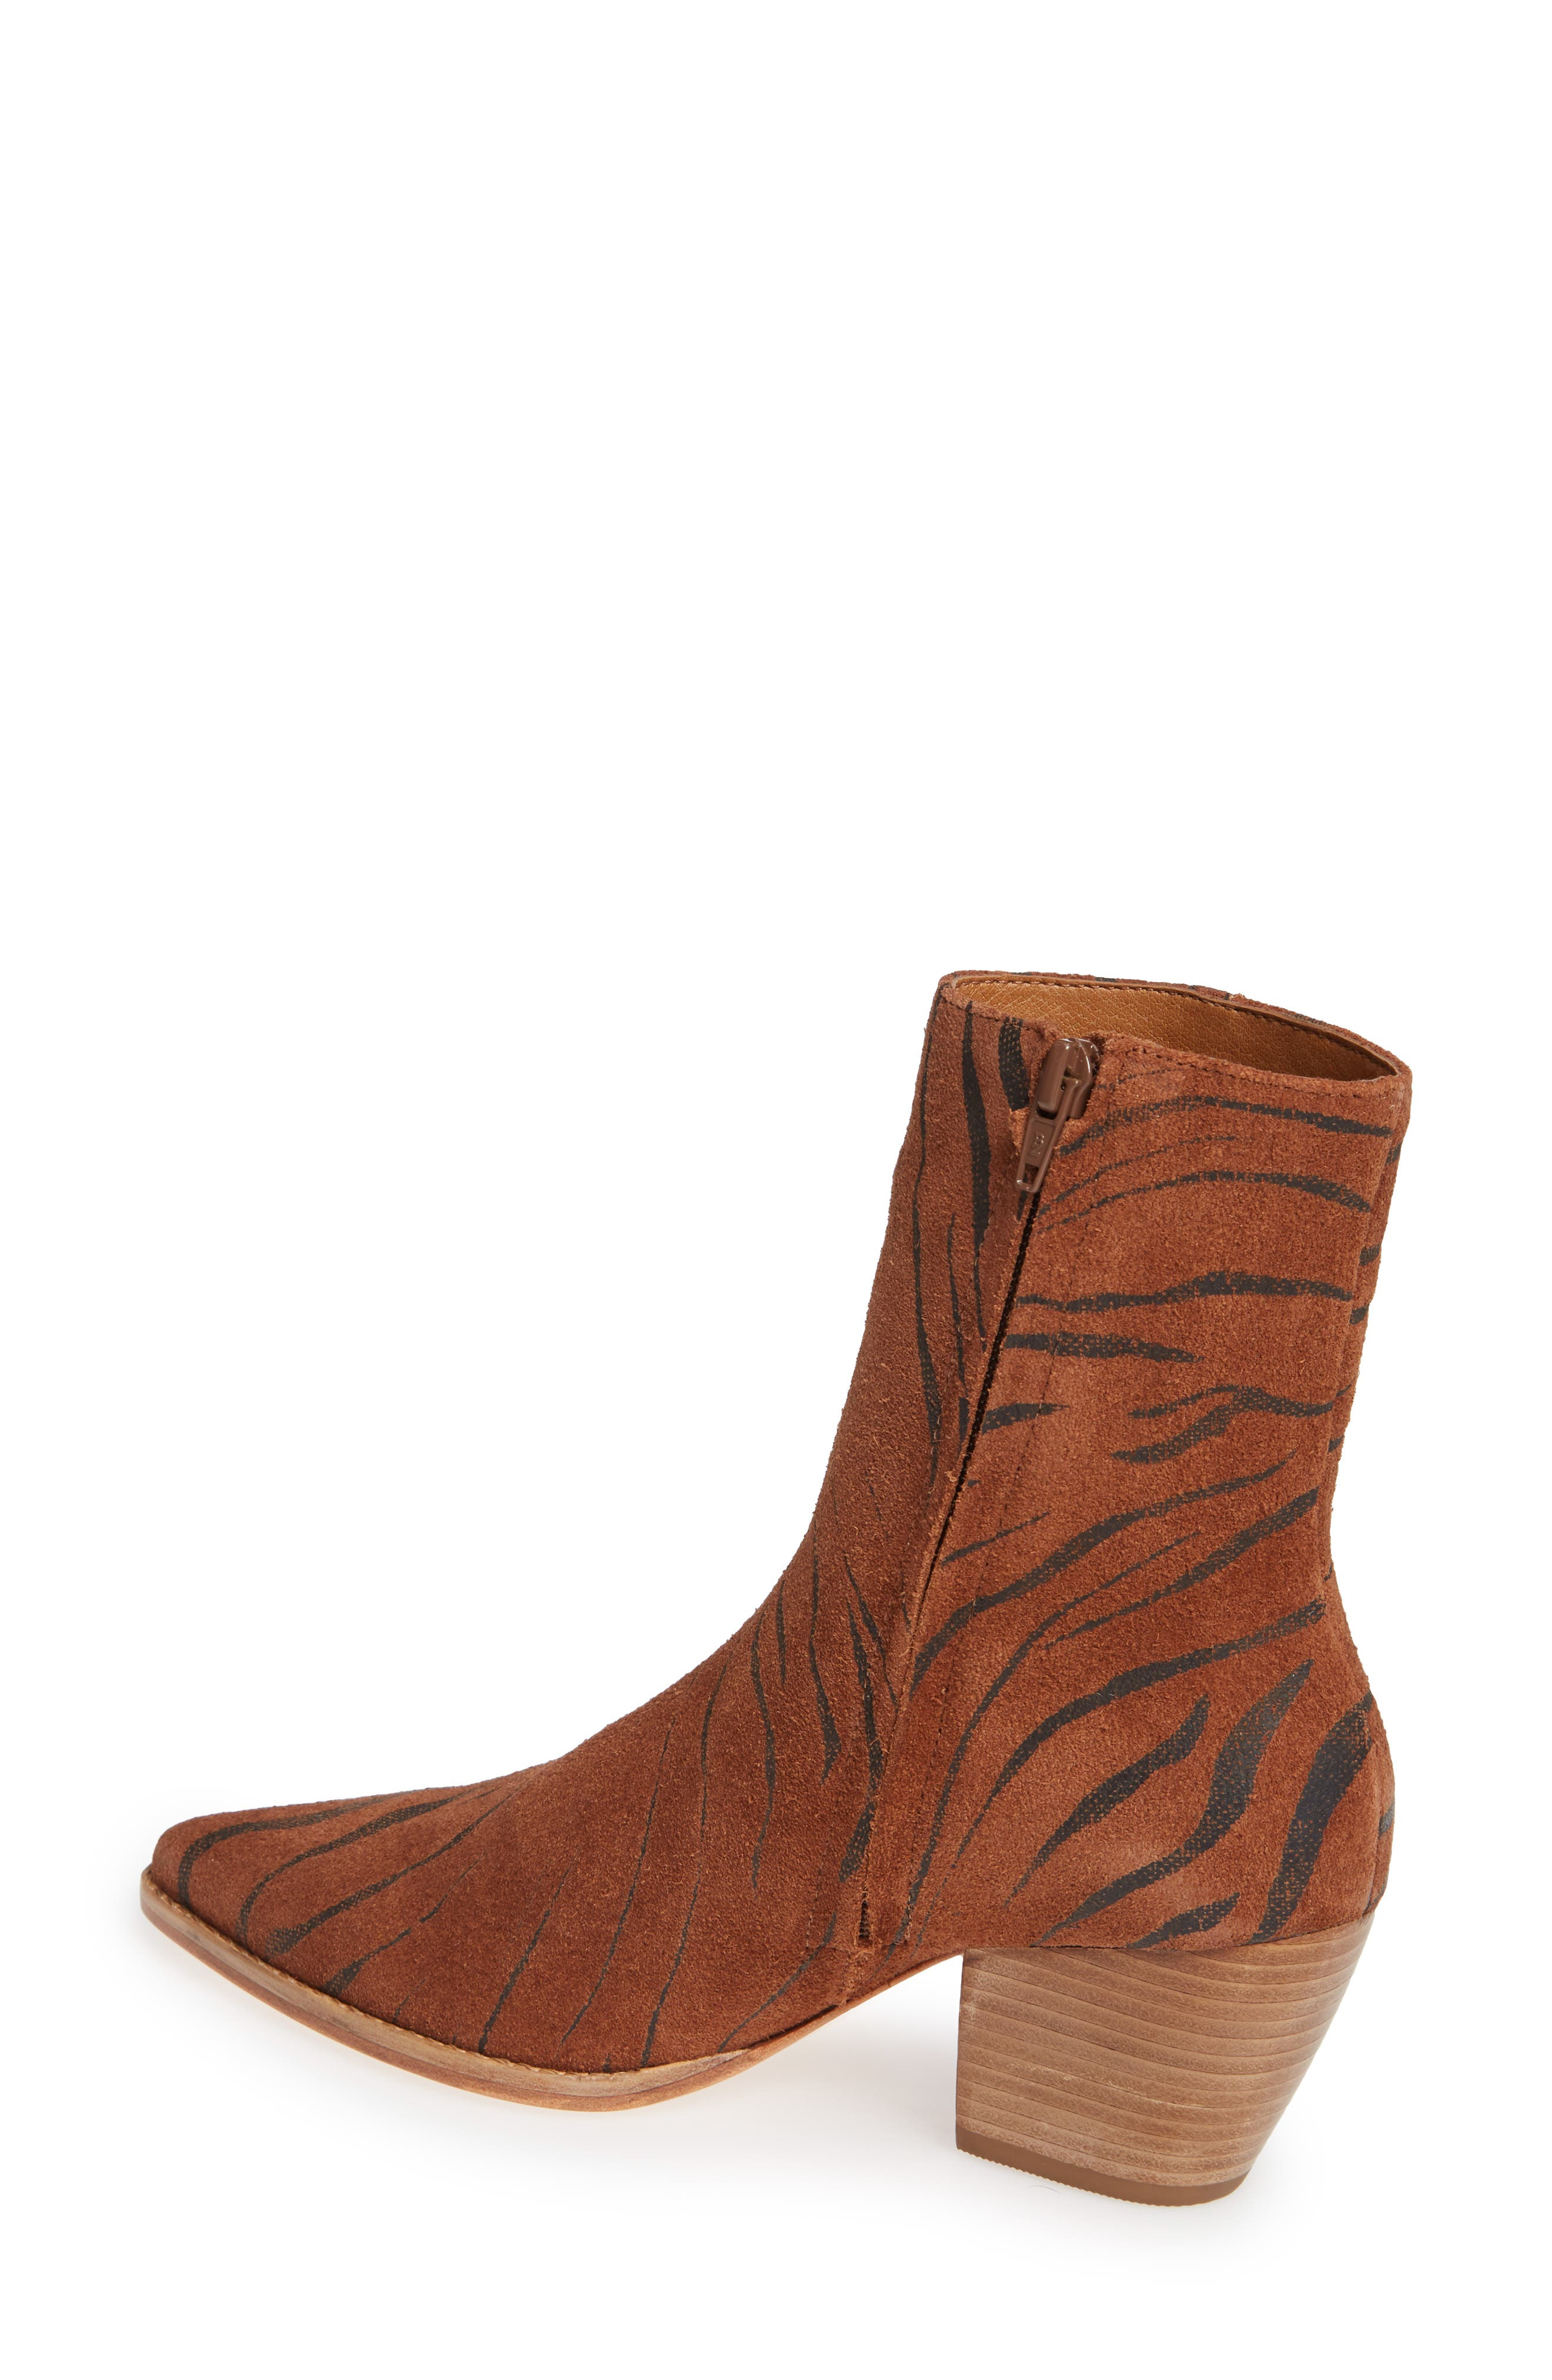 Caty Western Pointy Toe Bootie,                             Alternate thumbnail 2, color,                             TIGER SUEDE